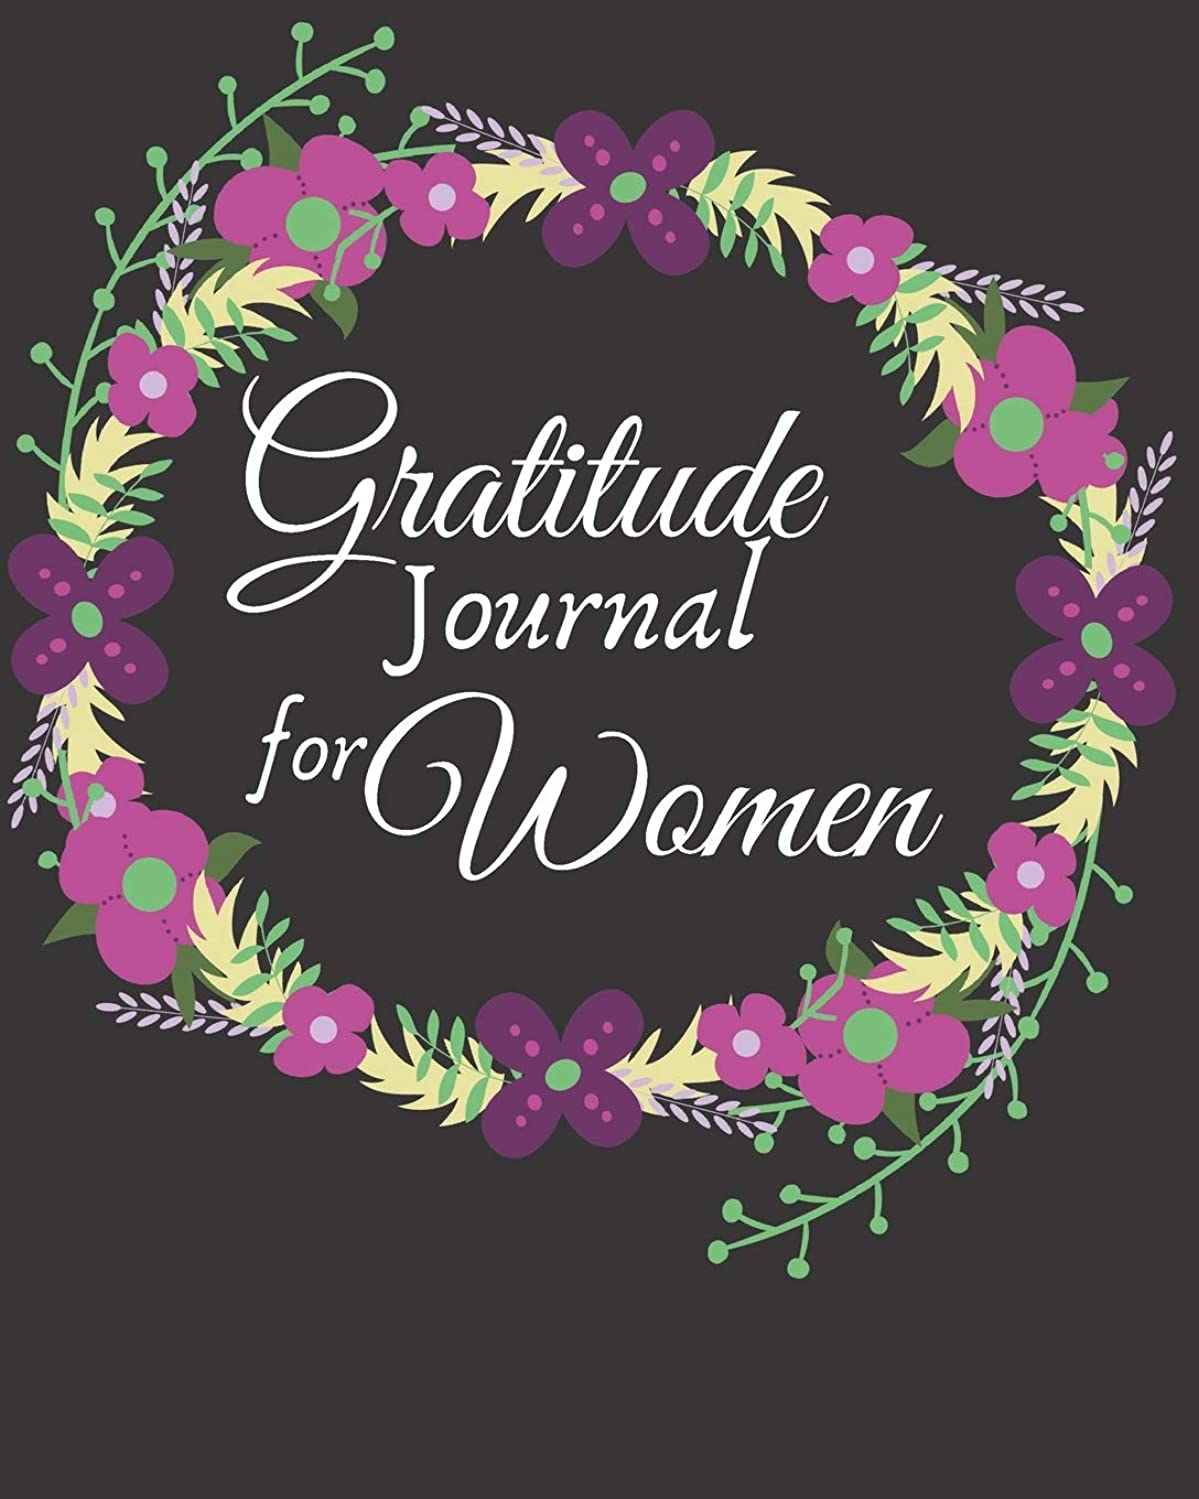 Gratitude Journal for Women: 1 minute Journal to Write with Motivational Quotes   1 year Daily Gratitude Journal   8 x 10 inches, 115 pages